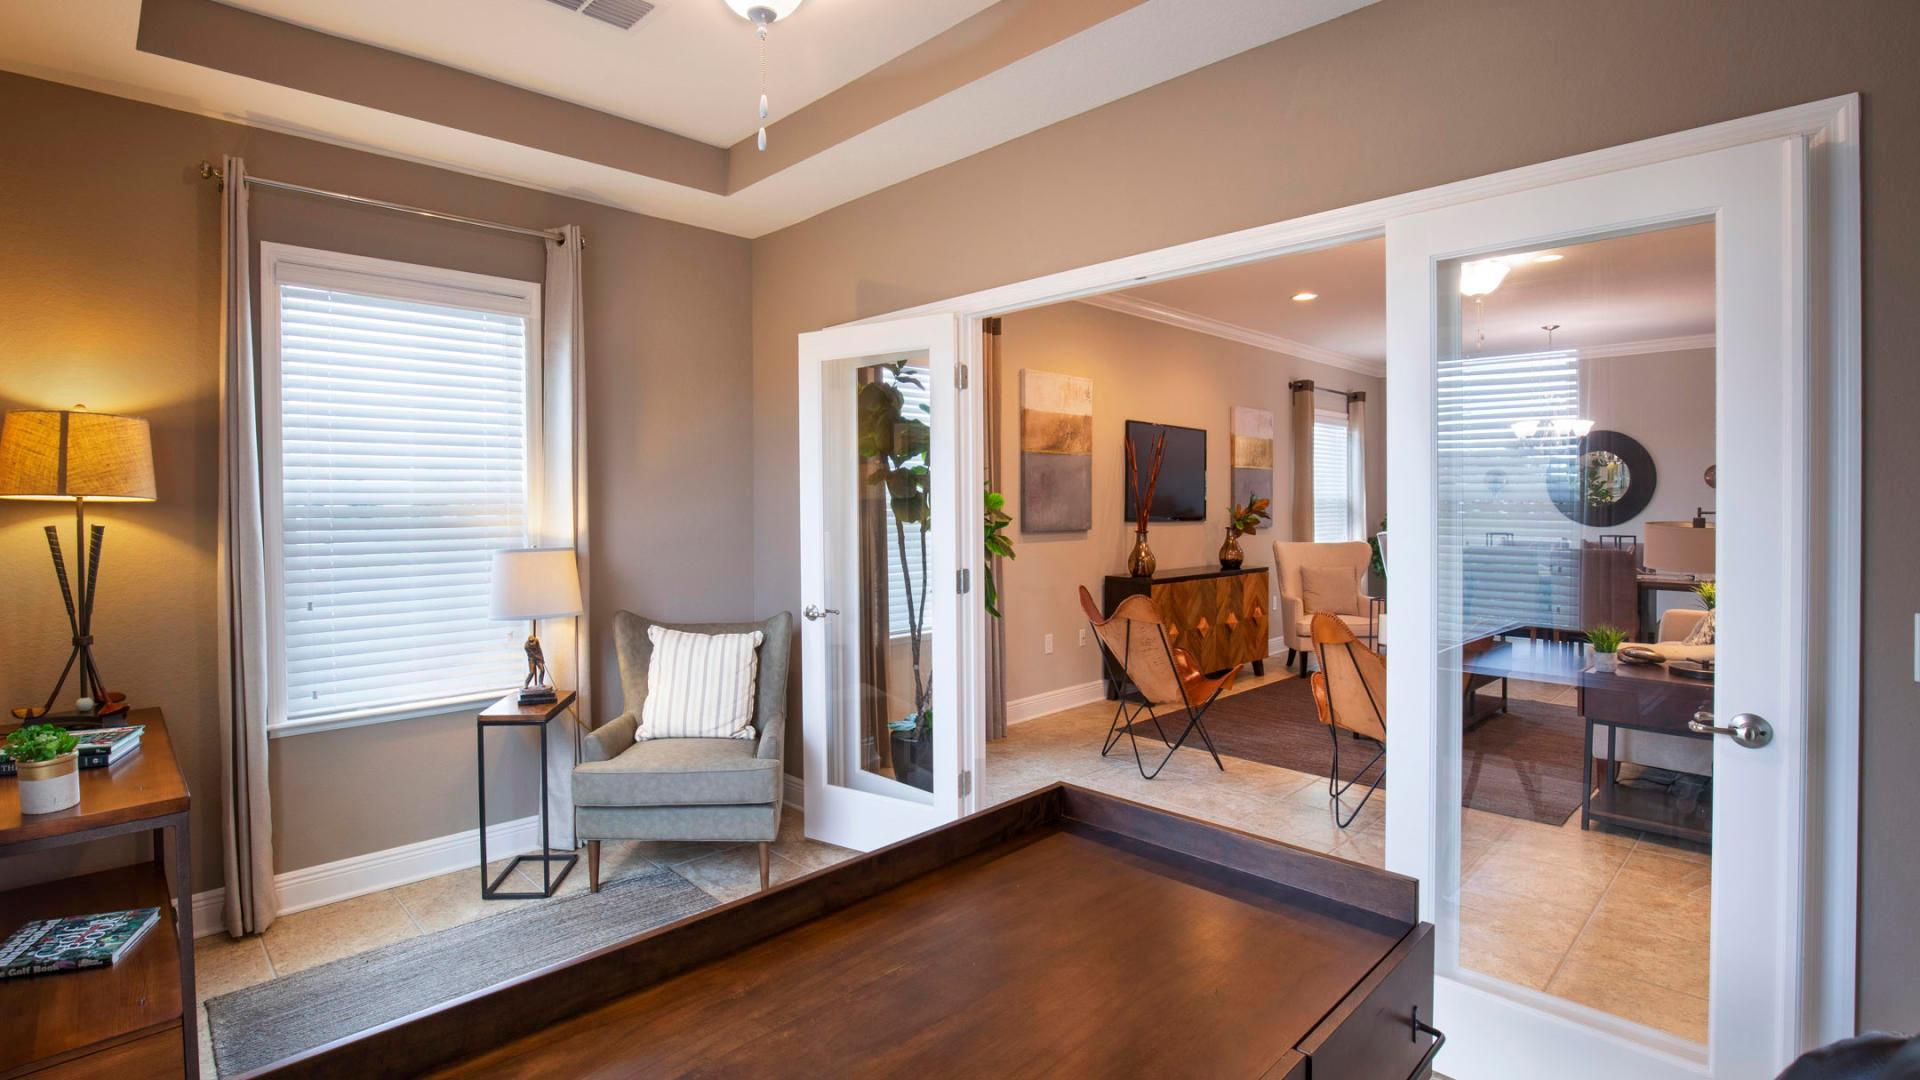 Living Area featured in the Venice By Maronda Homes in Daytona Beach, FL